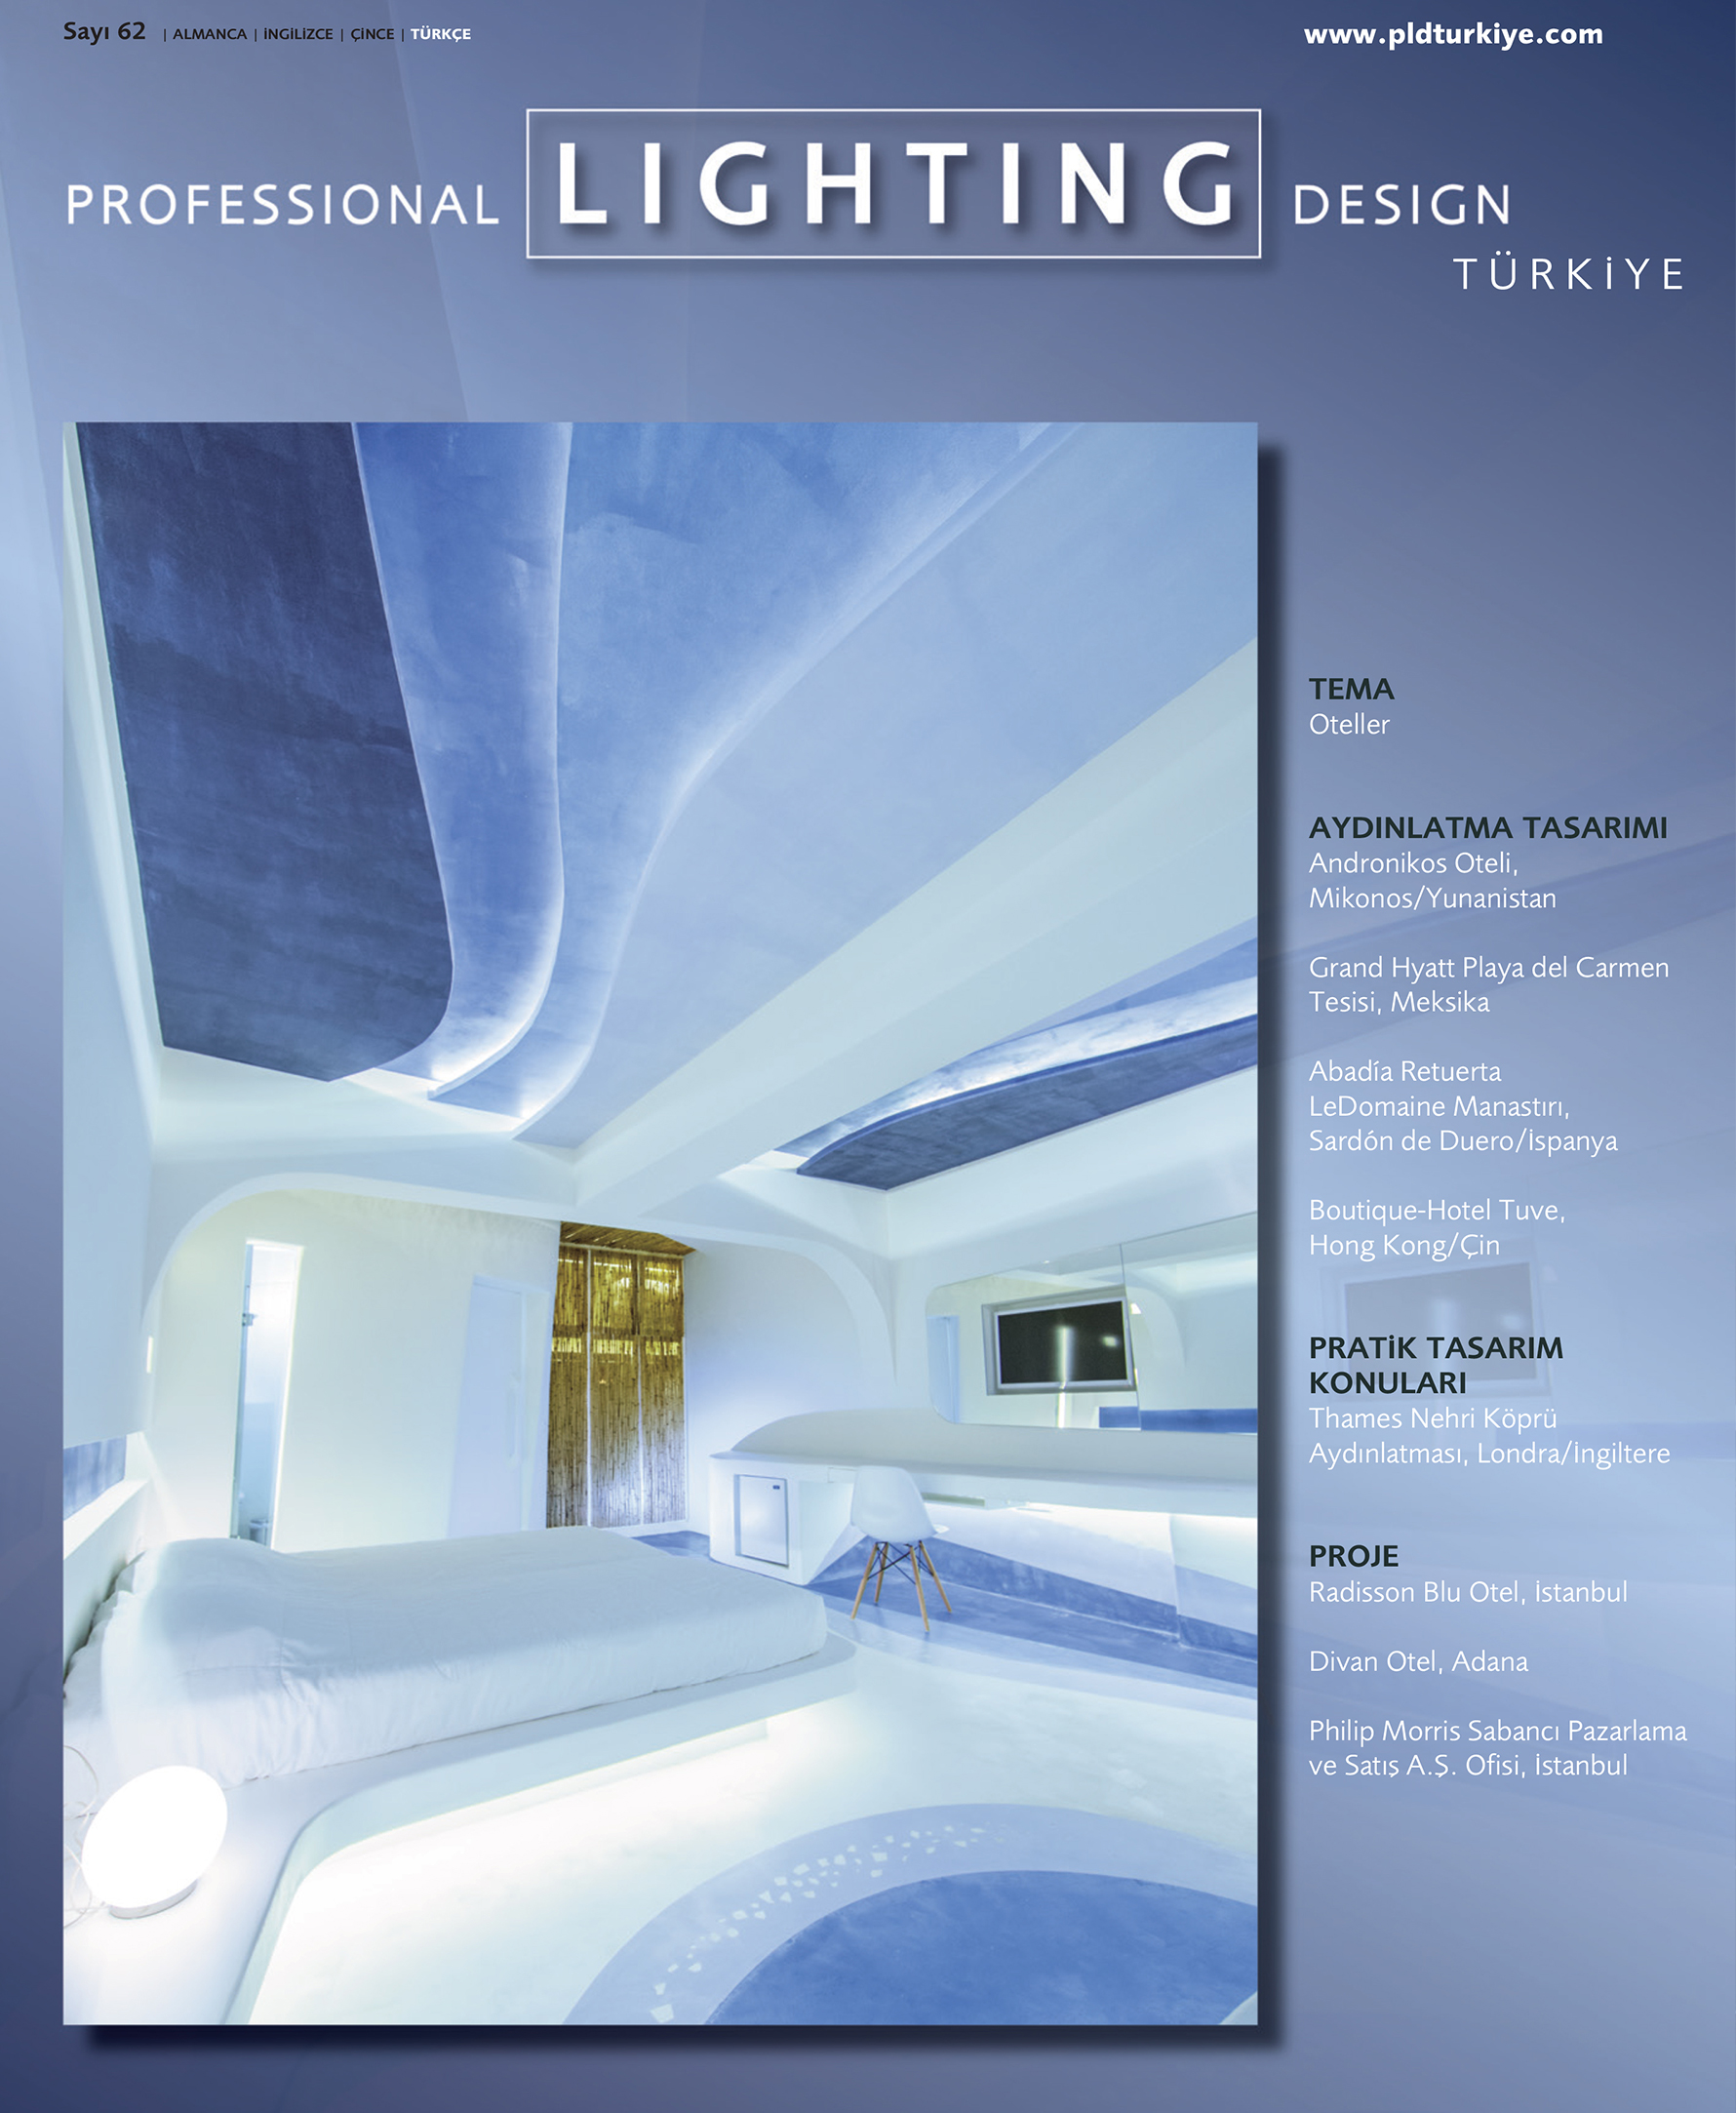 Professional Lighting Design Sayı:62